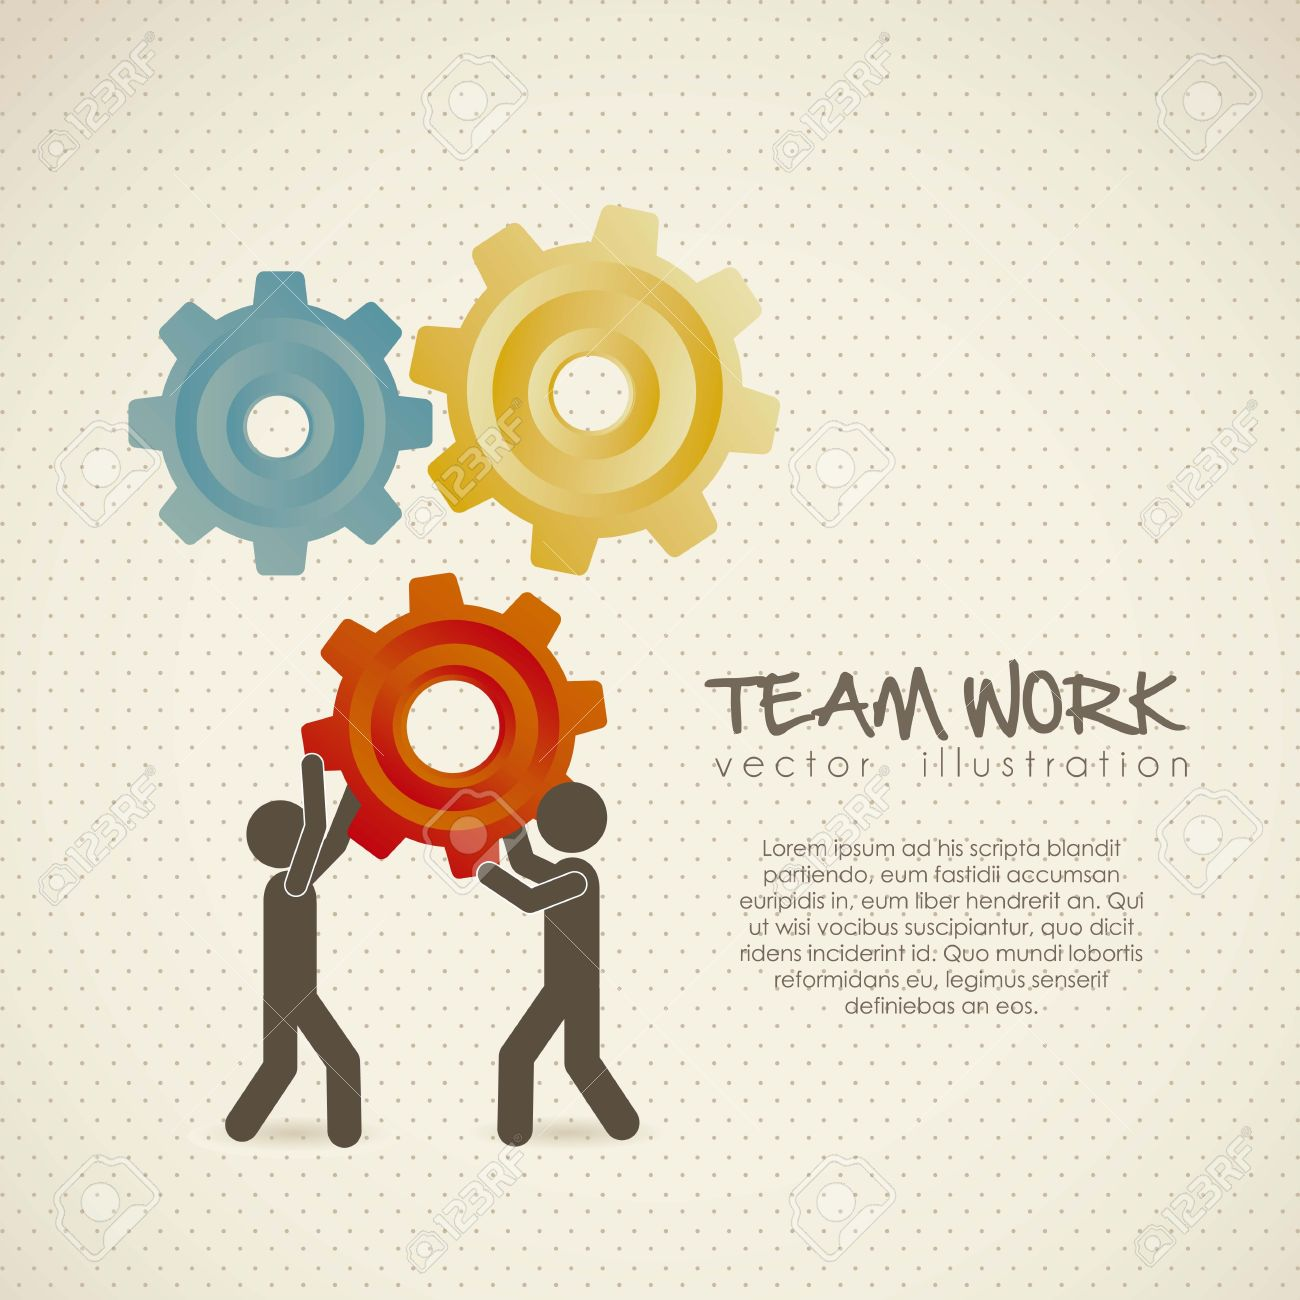 Illustration of silhouettes with gears, team work, Vector Illustration Stock Vector - 15271607